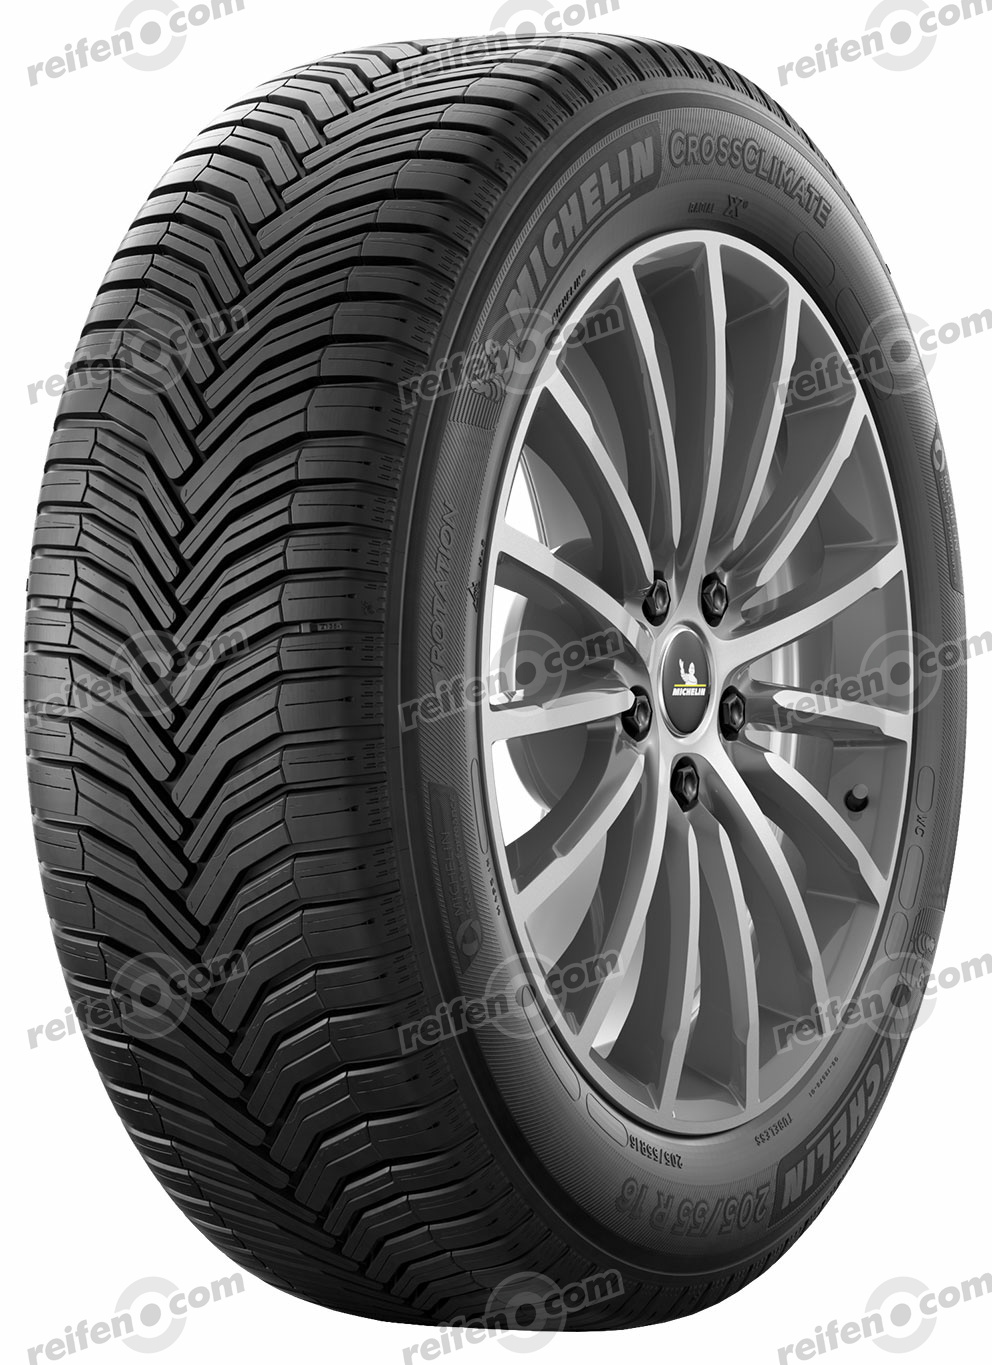 185/65 R15 92T Cross Climate+ XL  Cross Climate+ XL